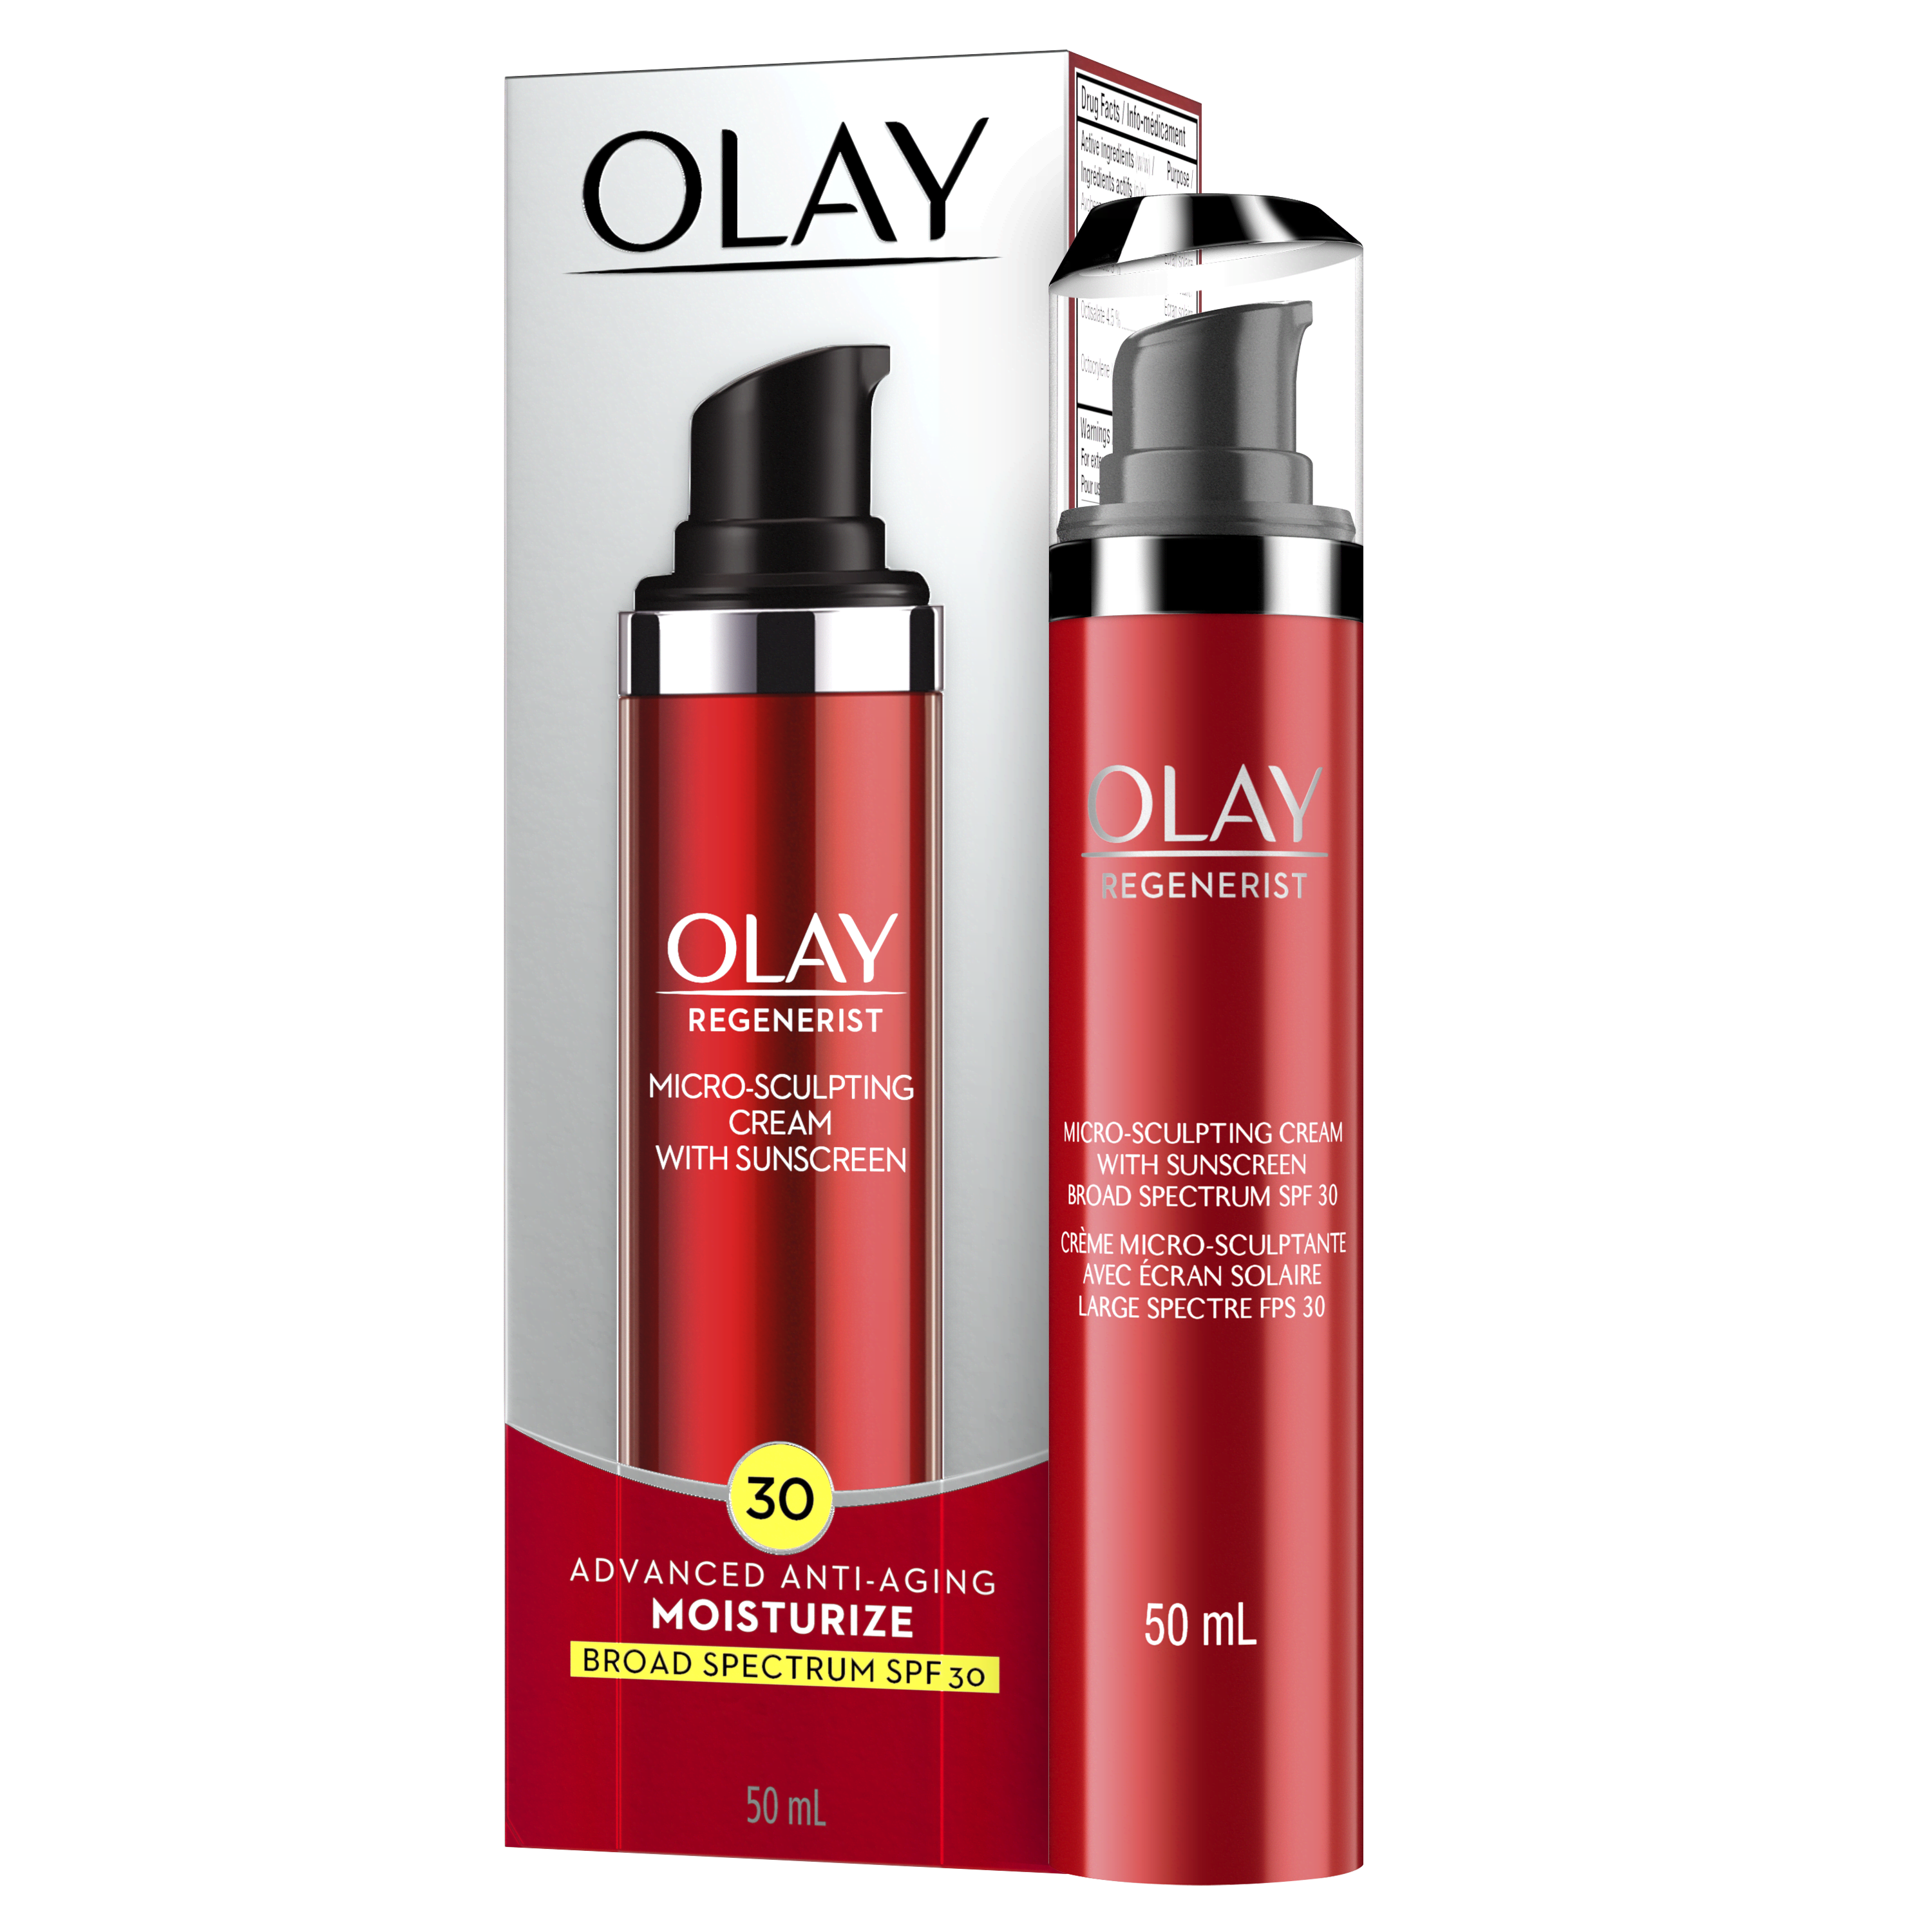 Olay Regenerist Micro Sculpting Cream with Sunscreen Broad Spectr...